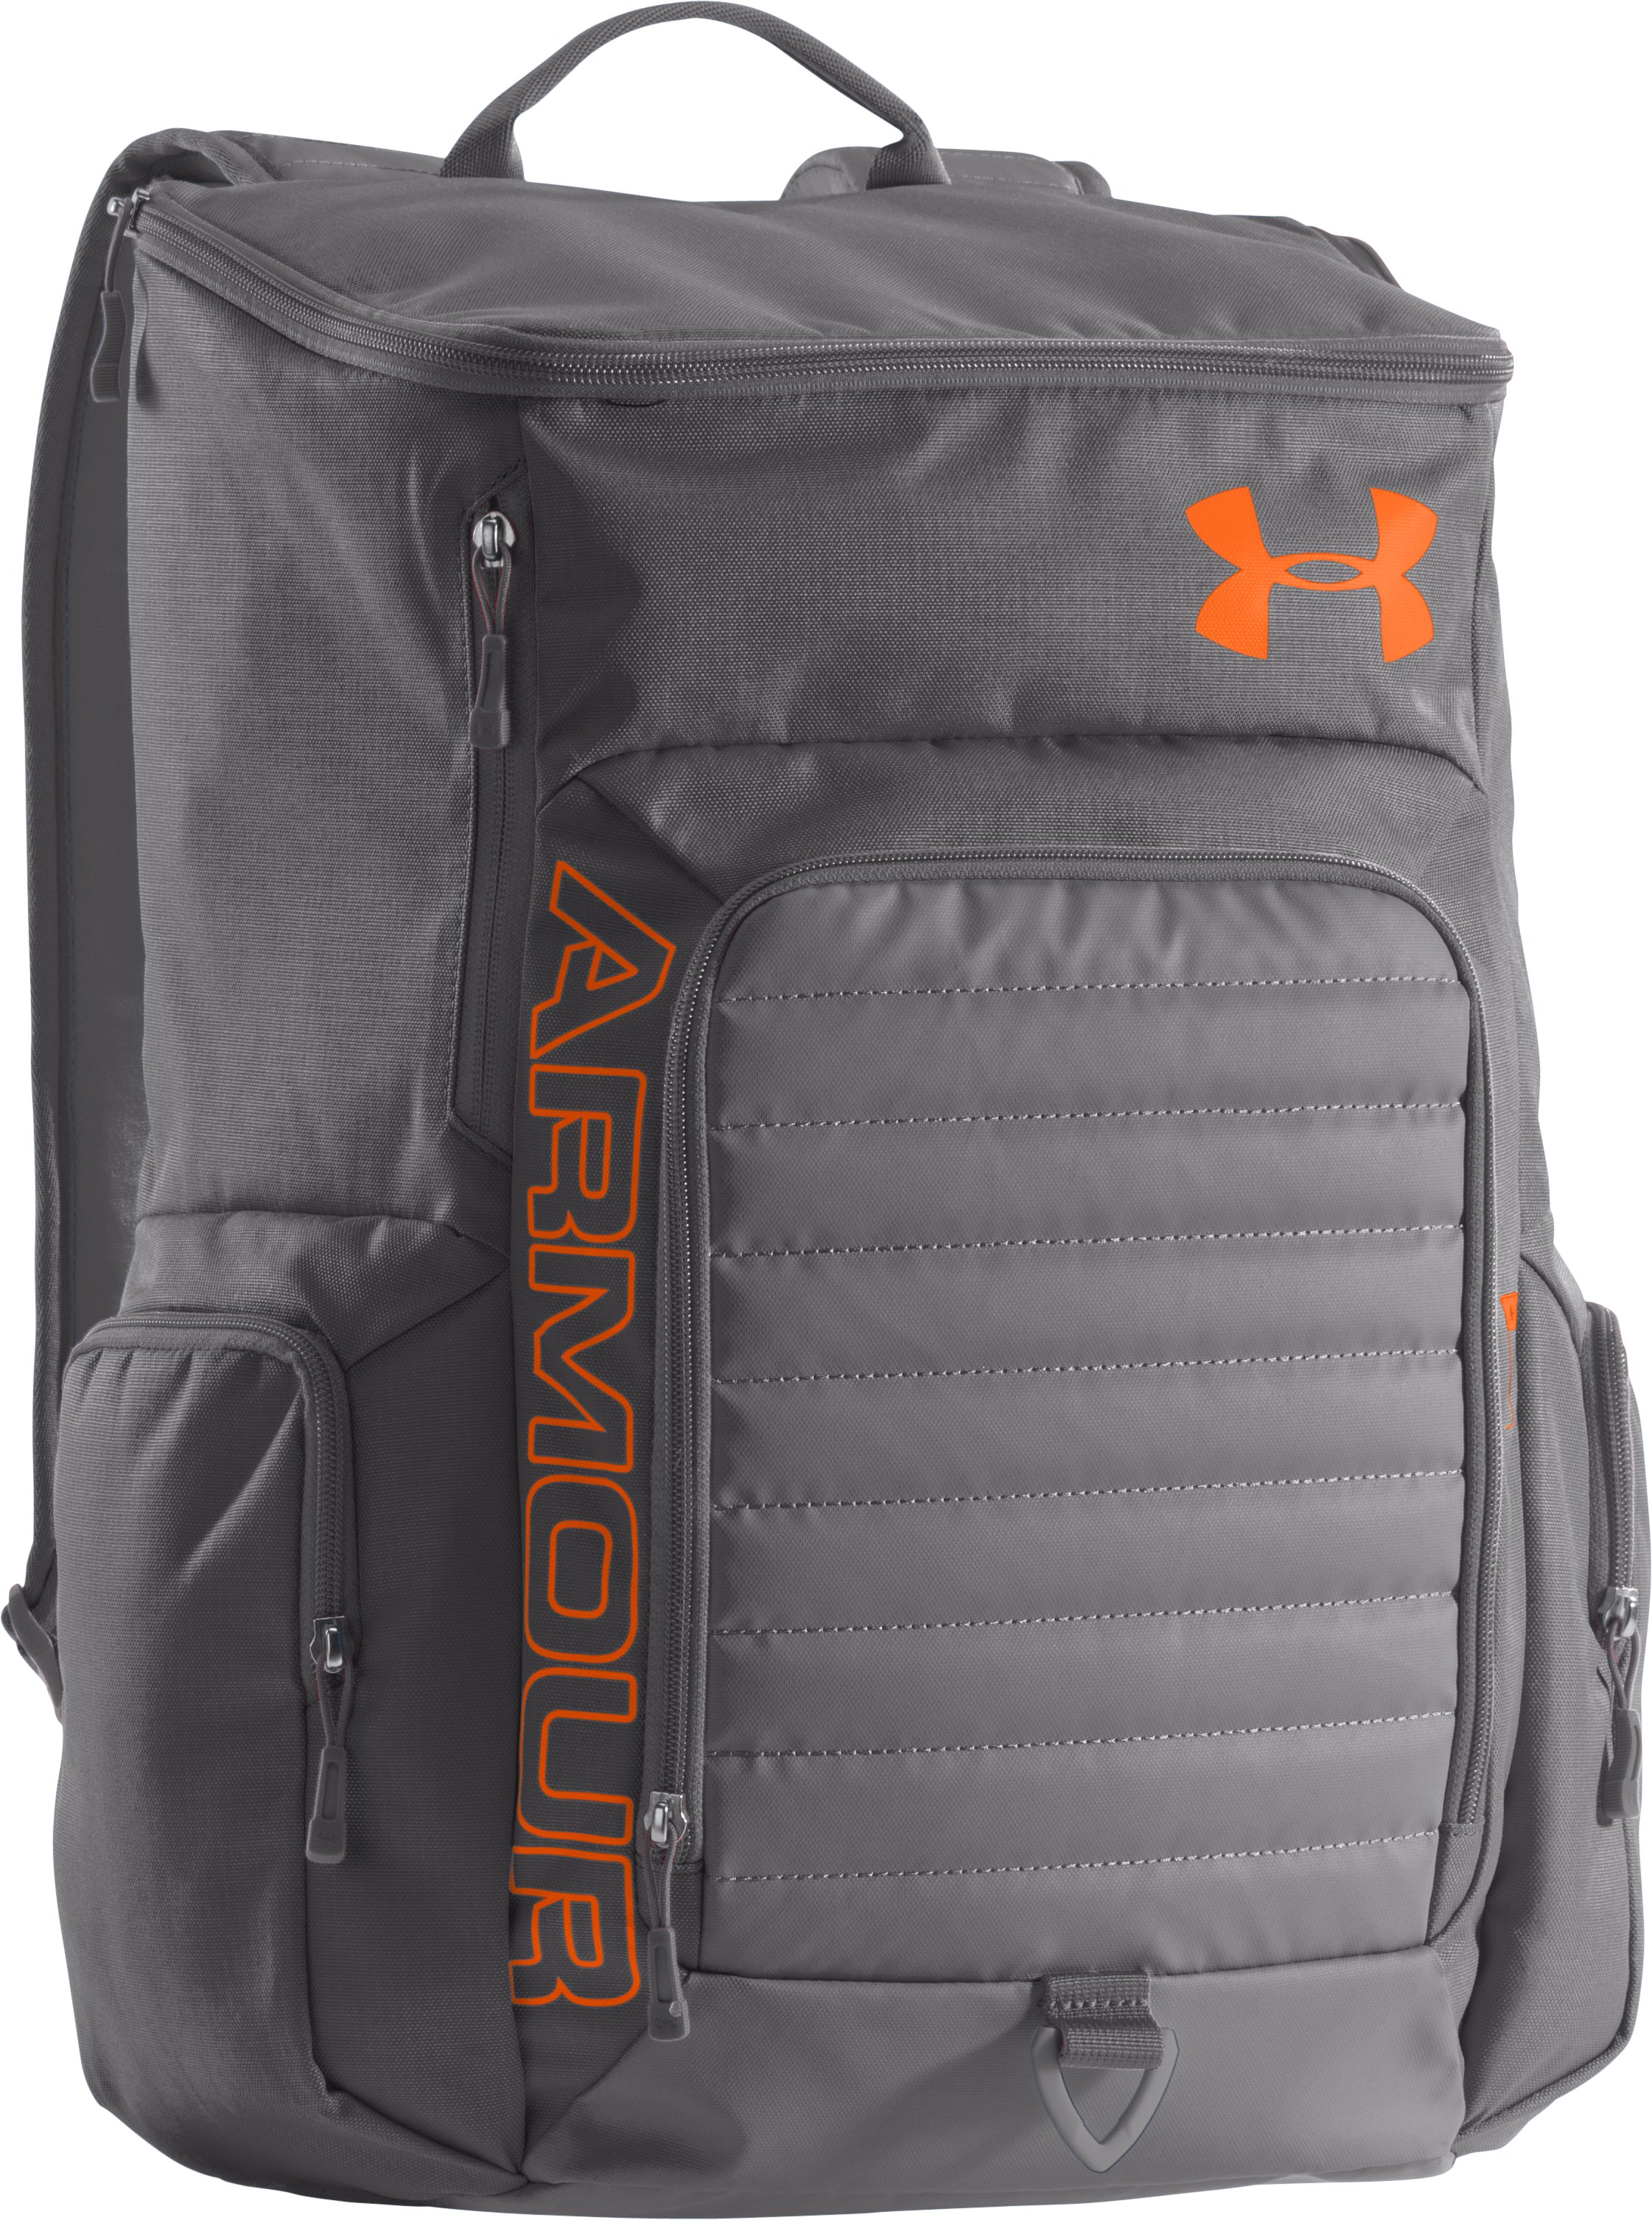 UA VX2-Undeniable Backpack, Graphite, zoomed image